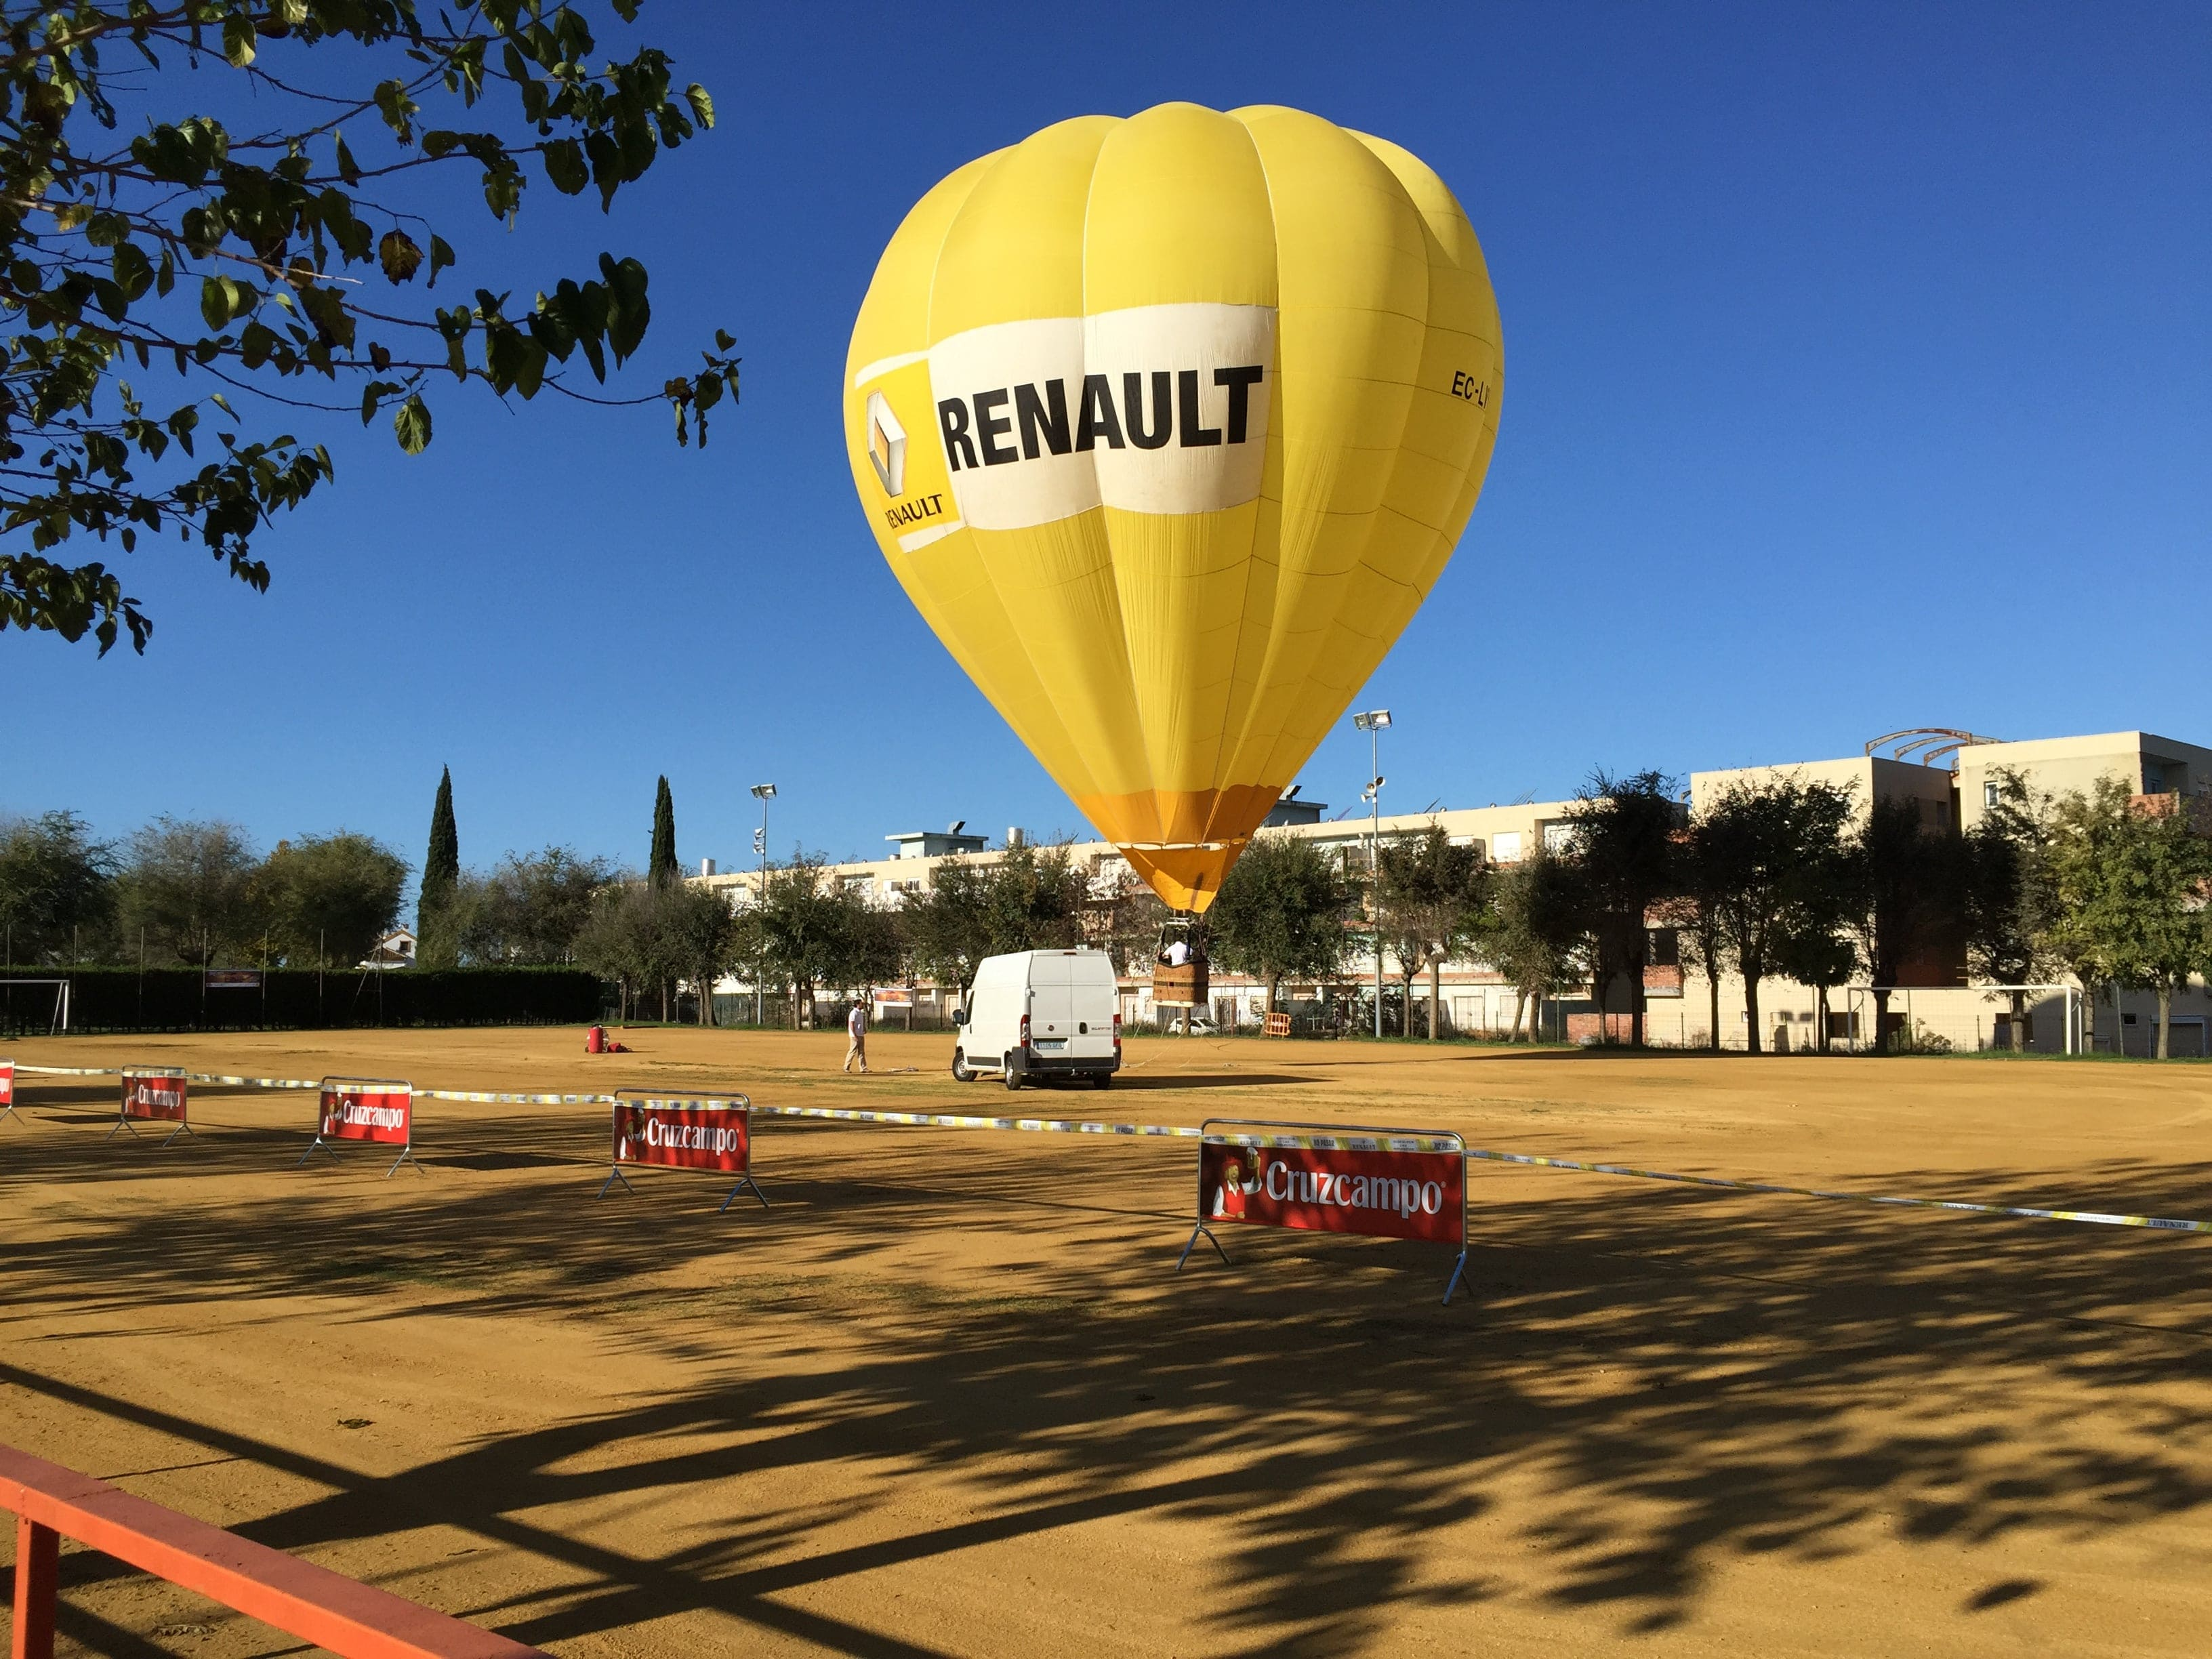 Renault práctica el Balloon Marketing con Globotur